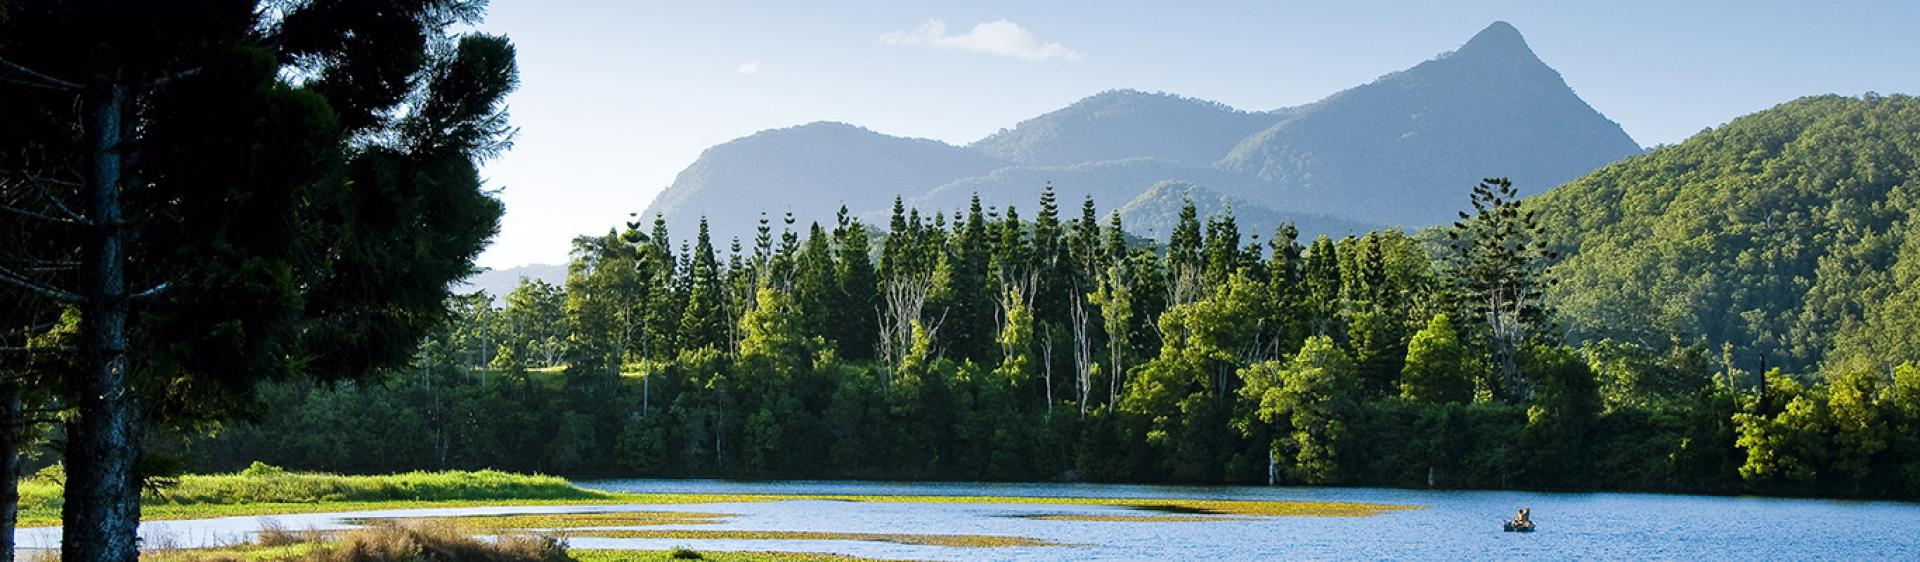 Mount Warning, Tweed Heads